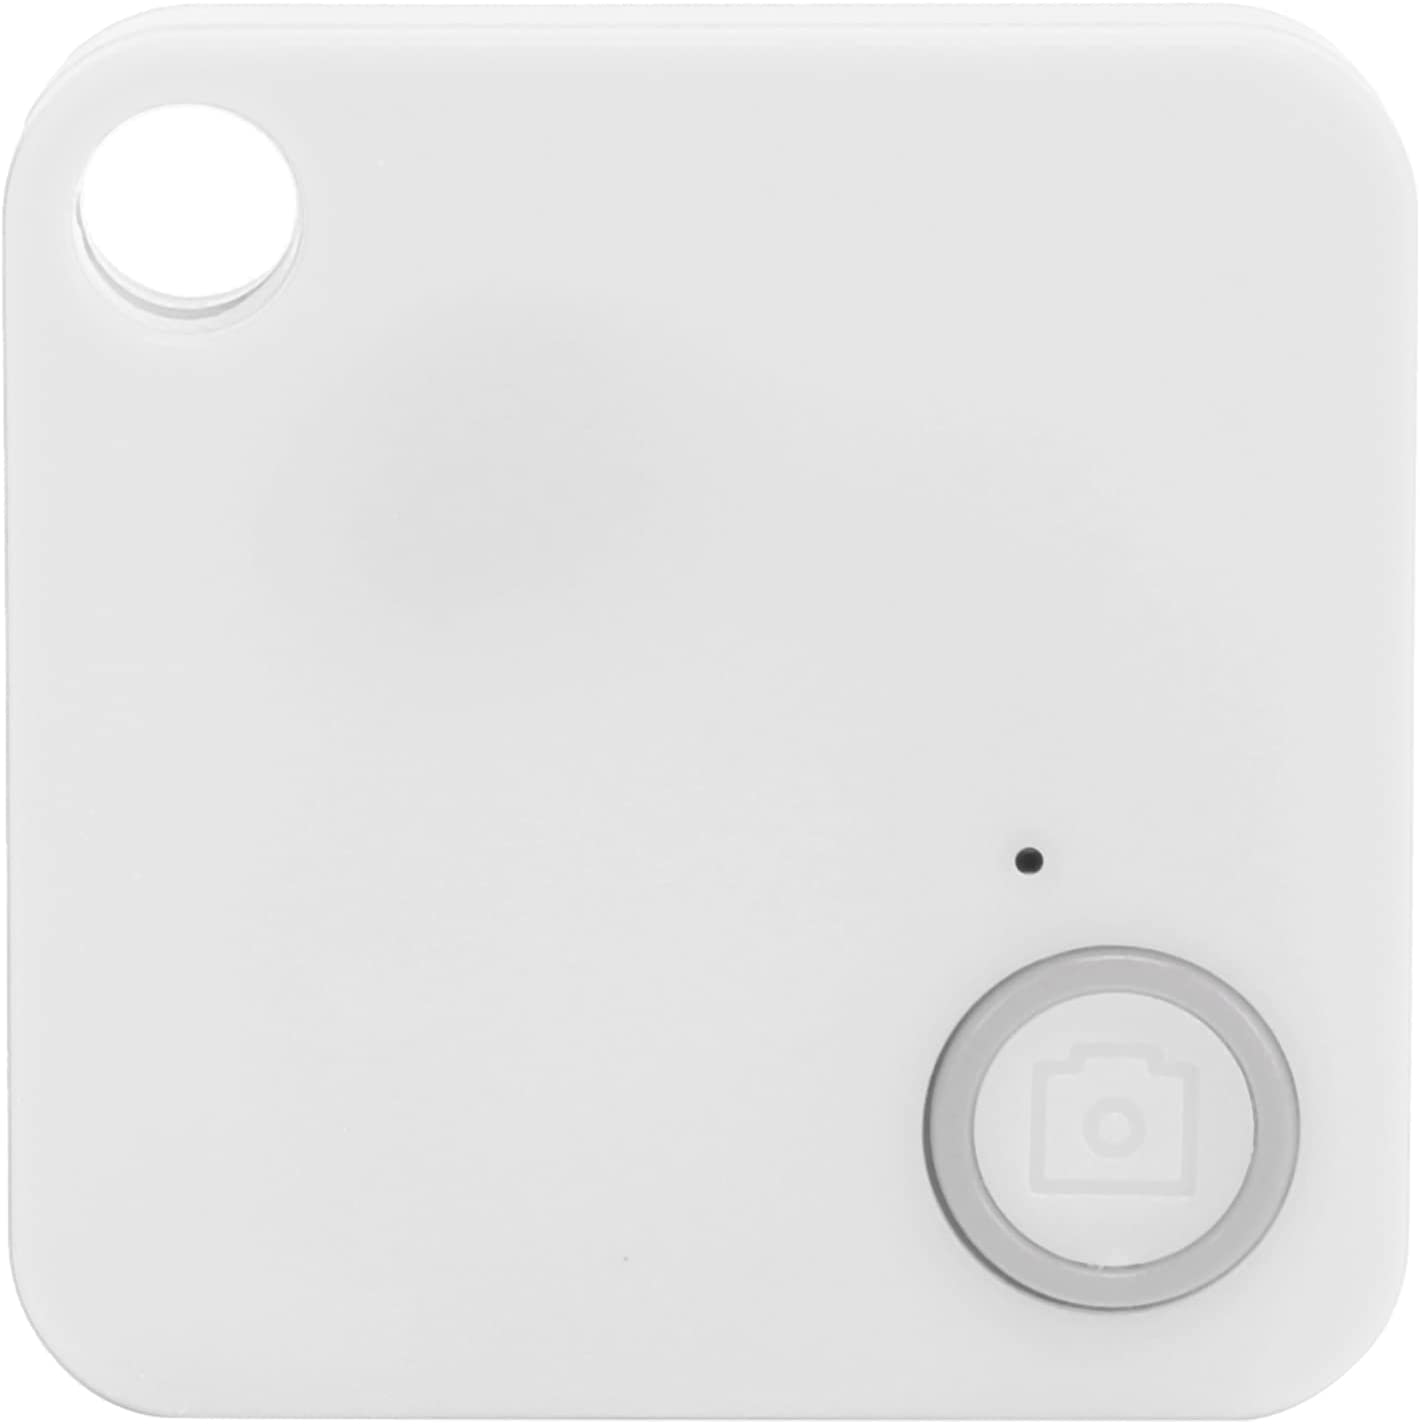 Ranvo Wallet, 4.0 Anti‑Lost Item Locator for Electronic Devices for Bags for Keys(White)